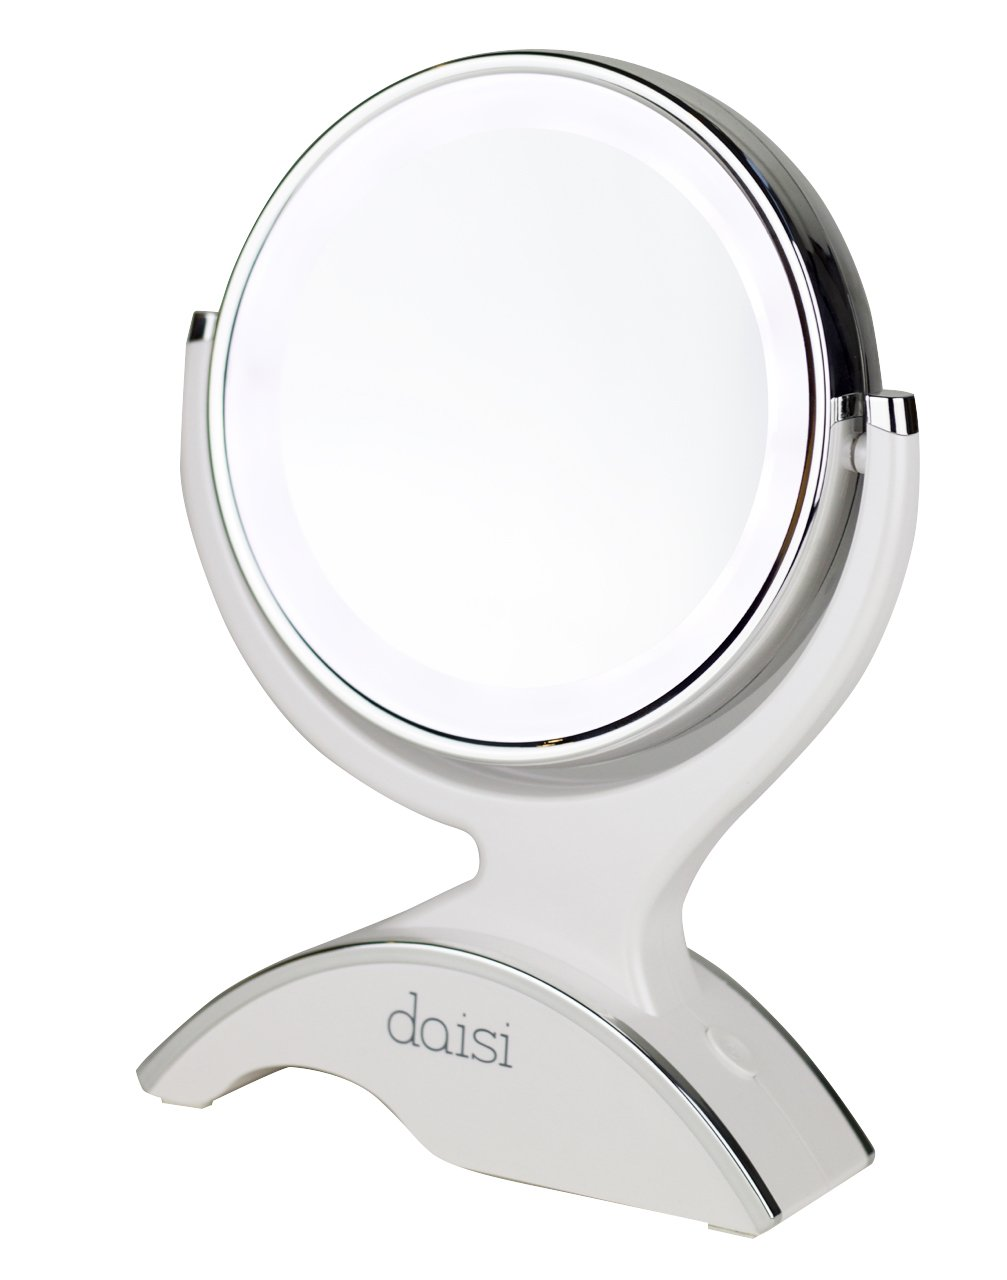 daisi Magnifying Lighted Makeup Tabletop Mirror with 360 Rotation  Standard 1X  7X Magnification LED